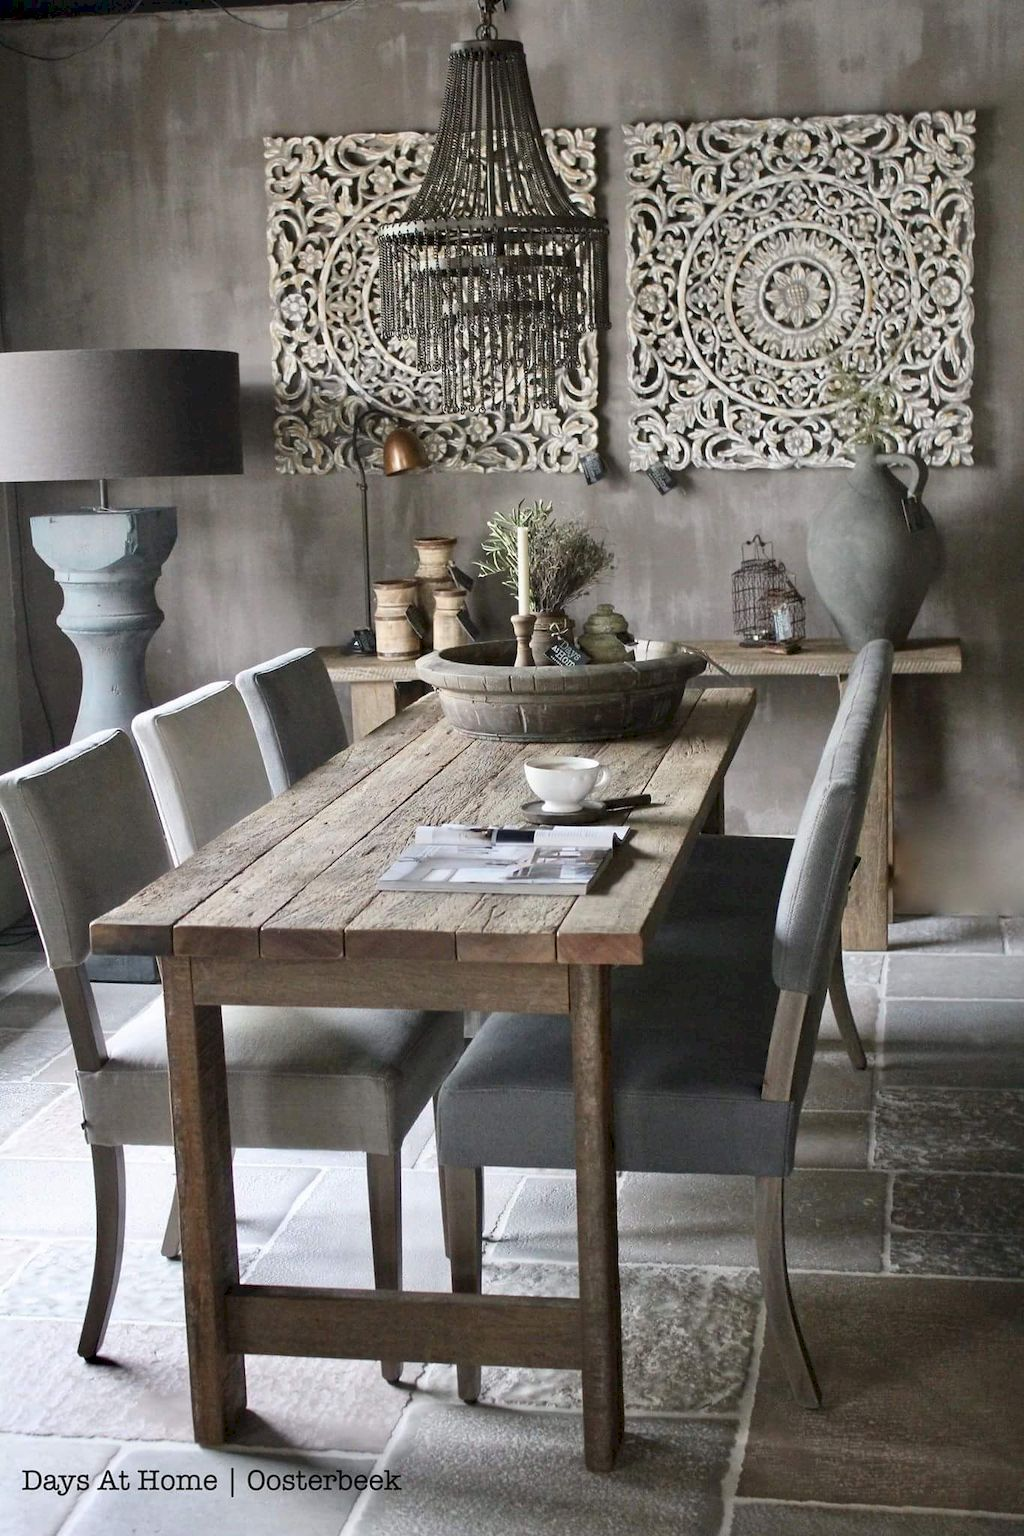 75 Vintage Dining Table Design Ideas Diy 43 Dining Table Design